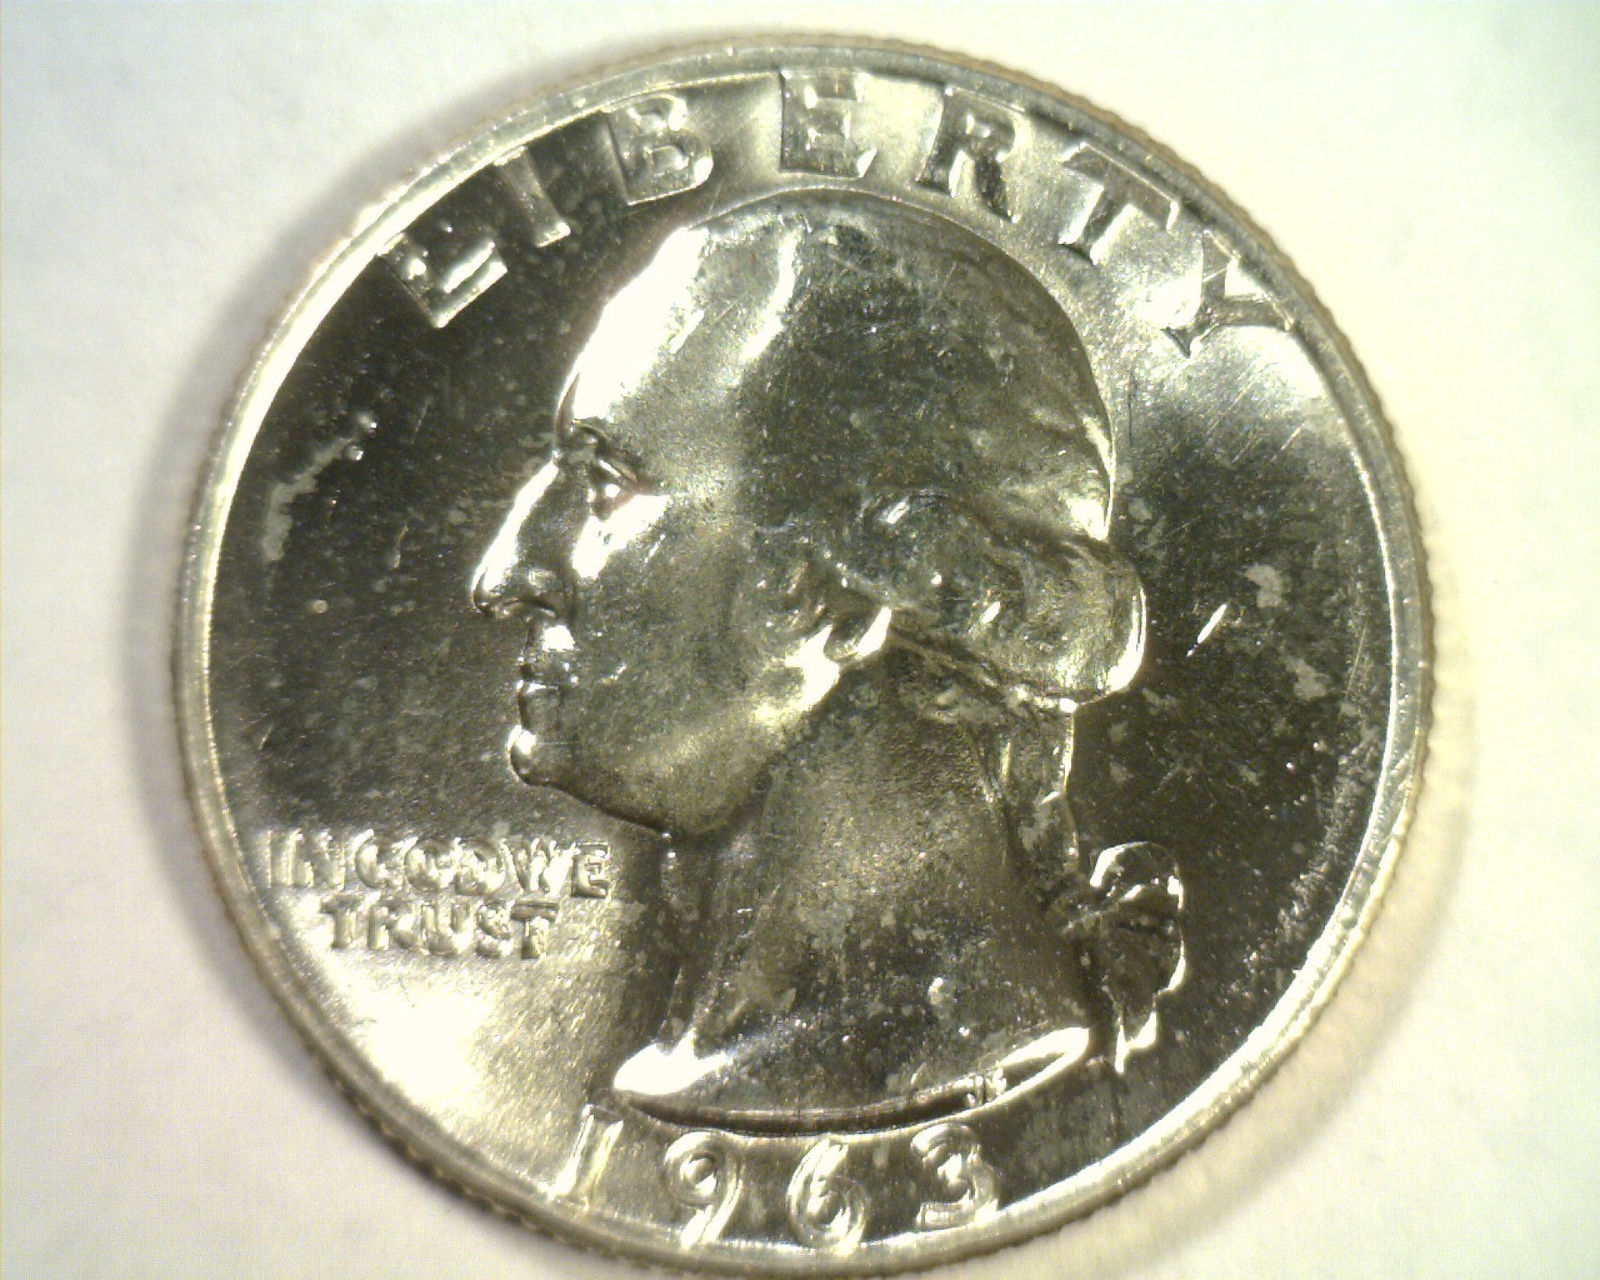 Primary image for 1963-D WASHINGTON QUARTER CHOICE UNCIRCULATED+ CH. UNC.+ NICE ORIGINAL COIN